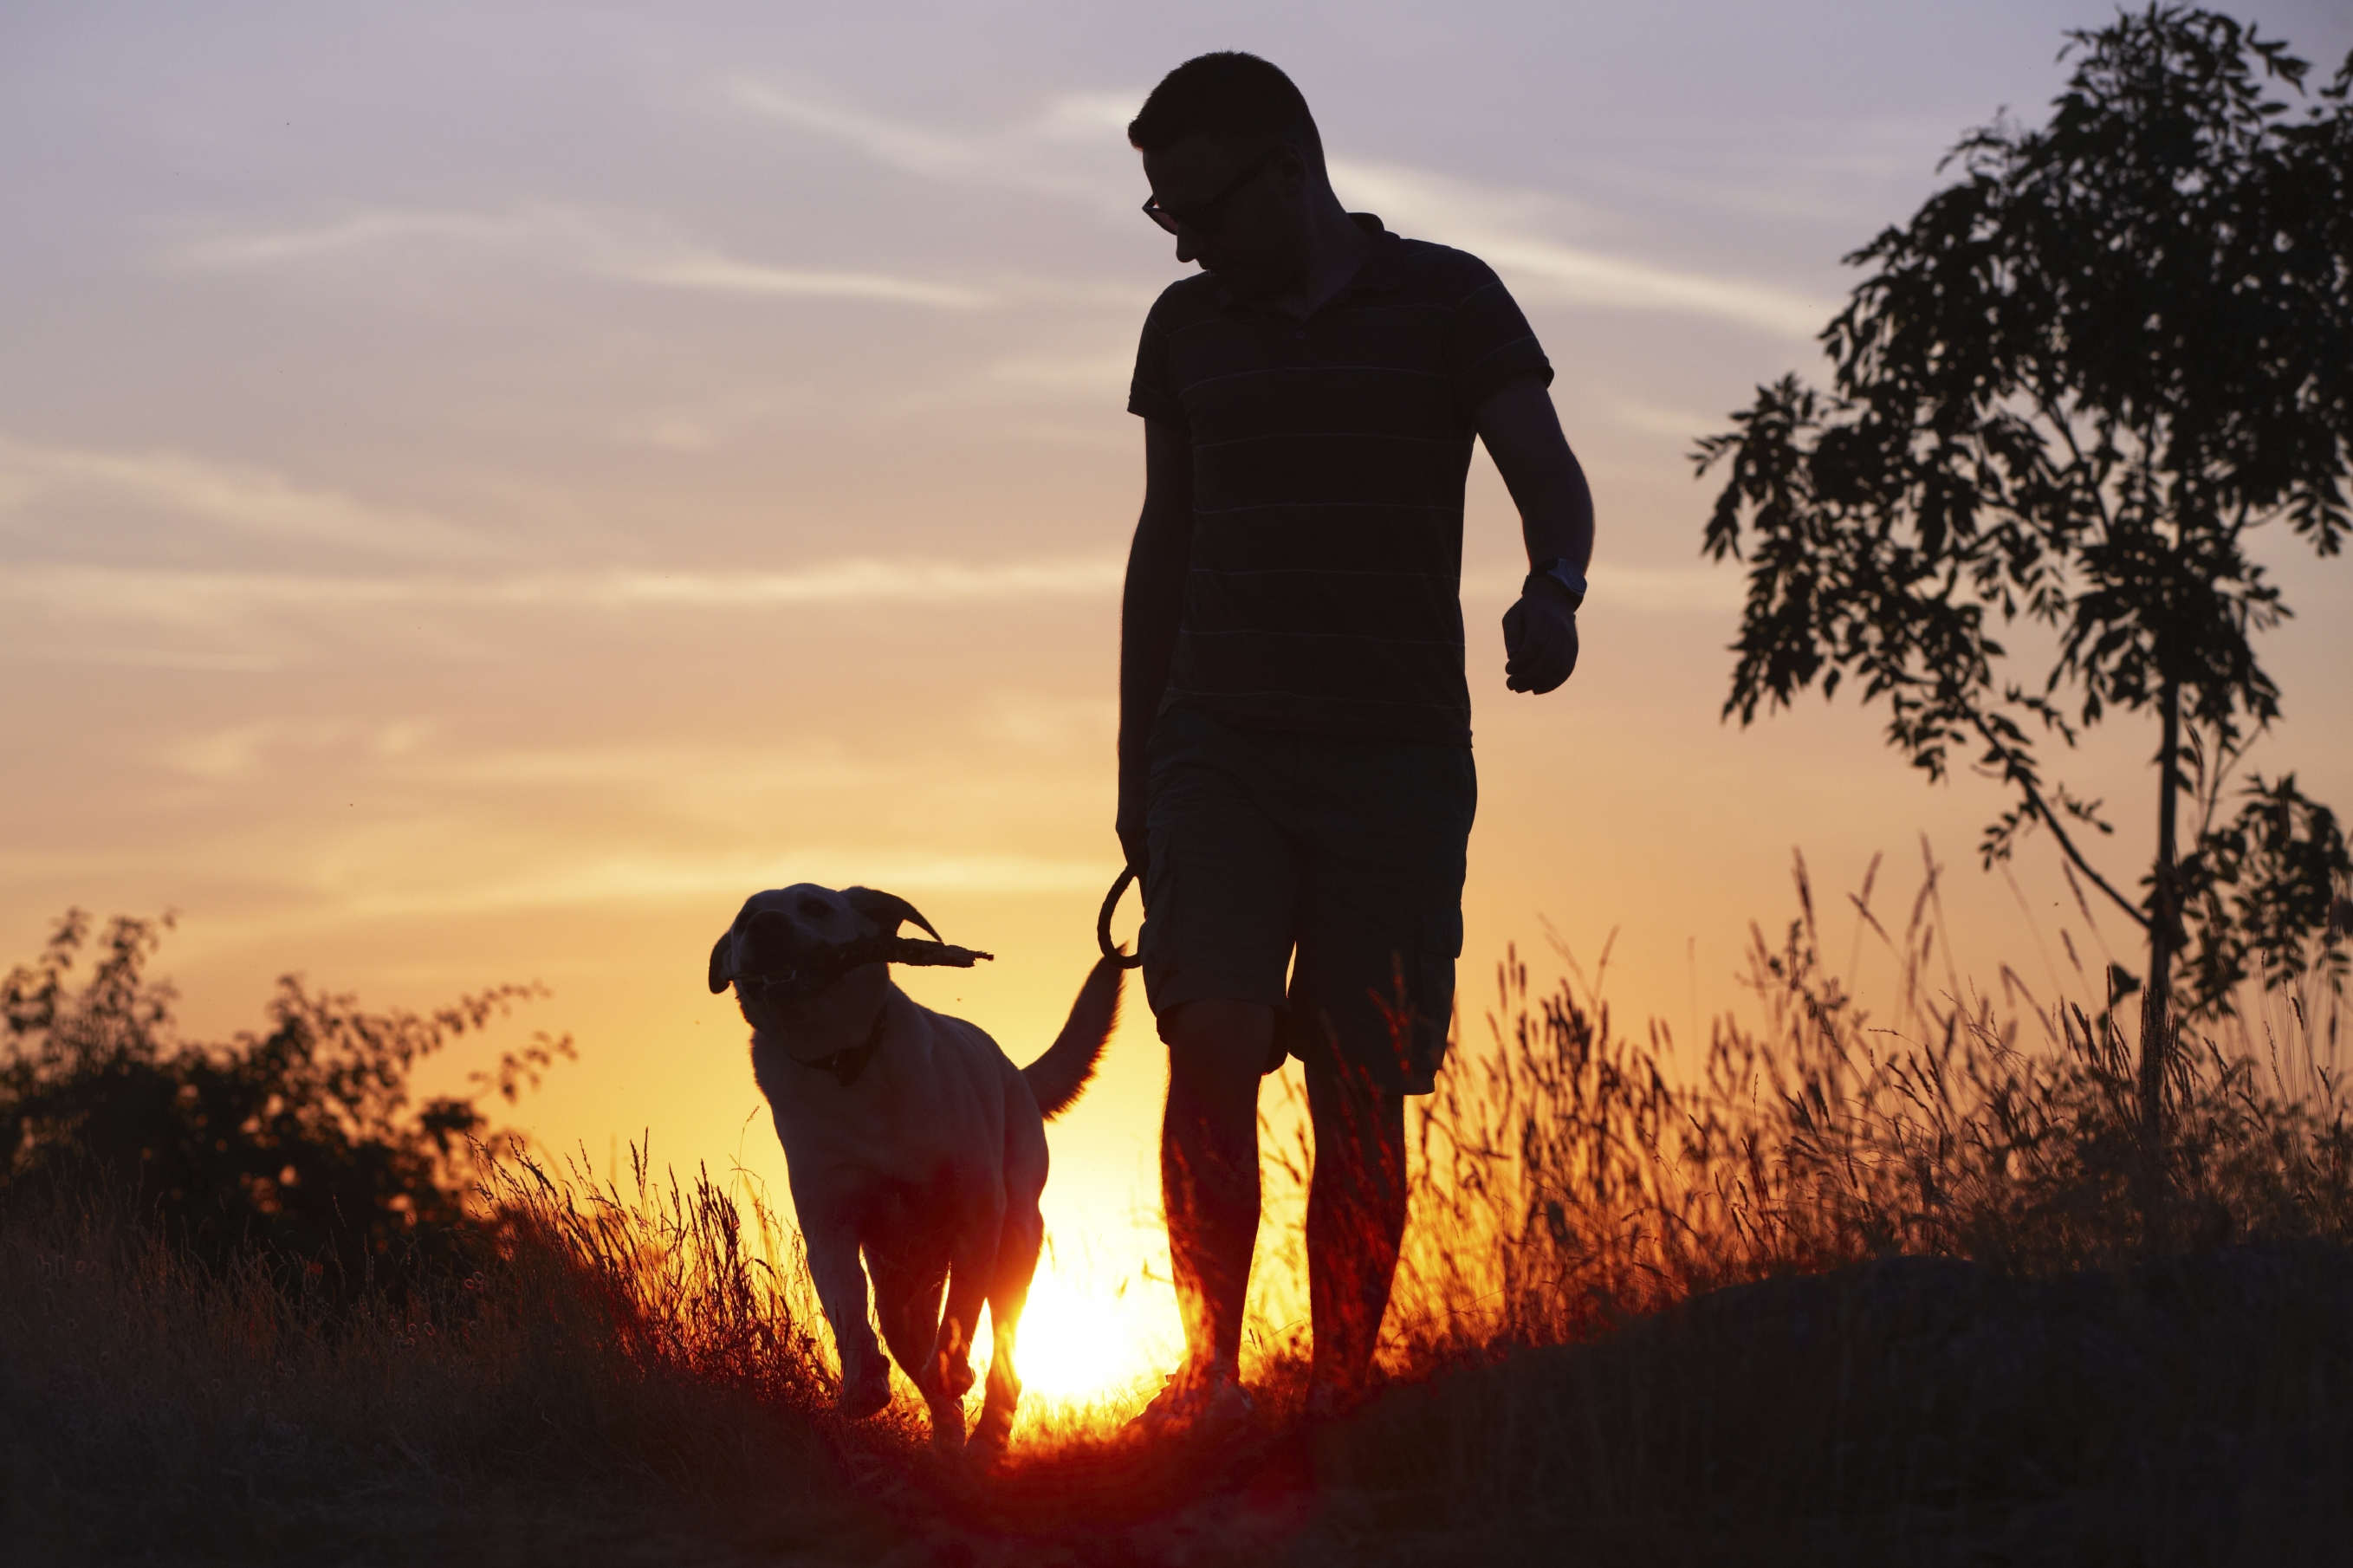 a silhouette of a man walks his dog at sunset